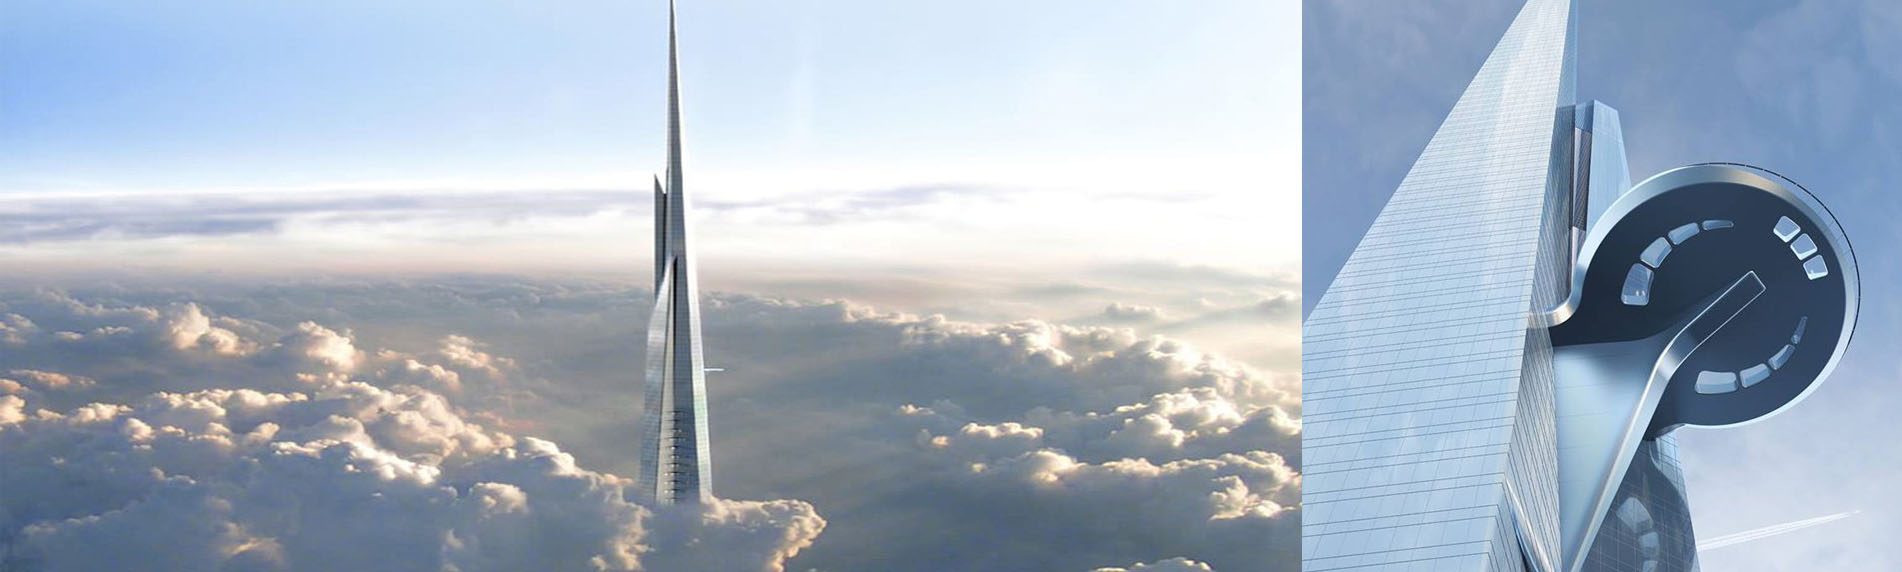 jeddah tower saudi